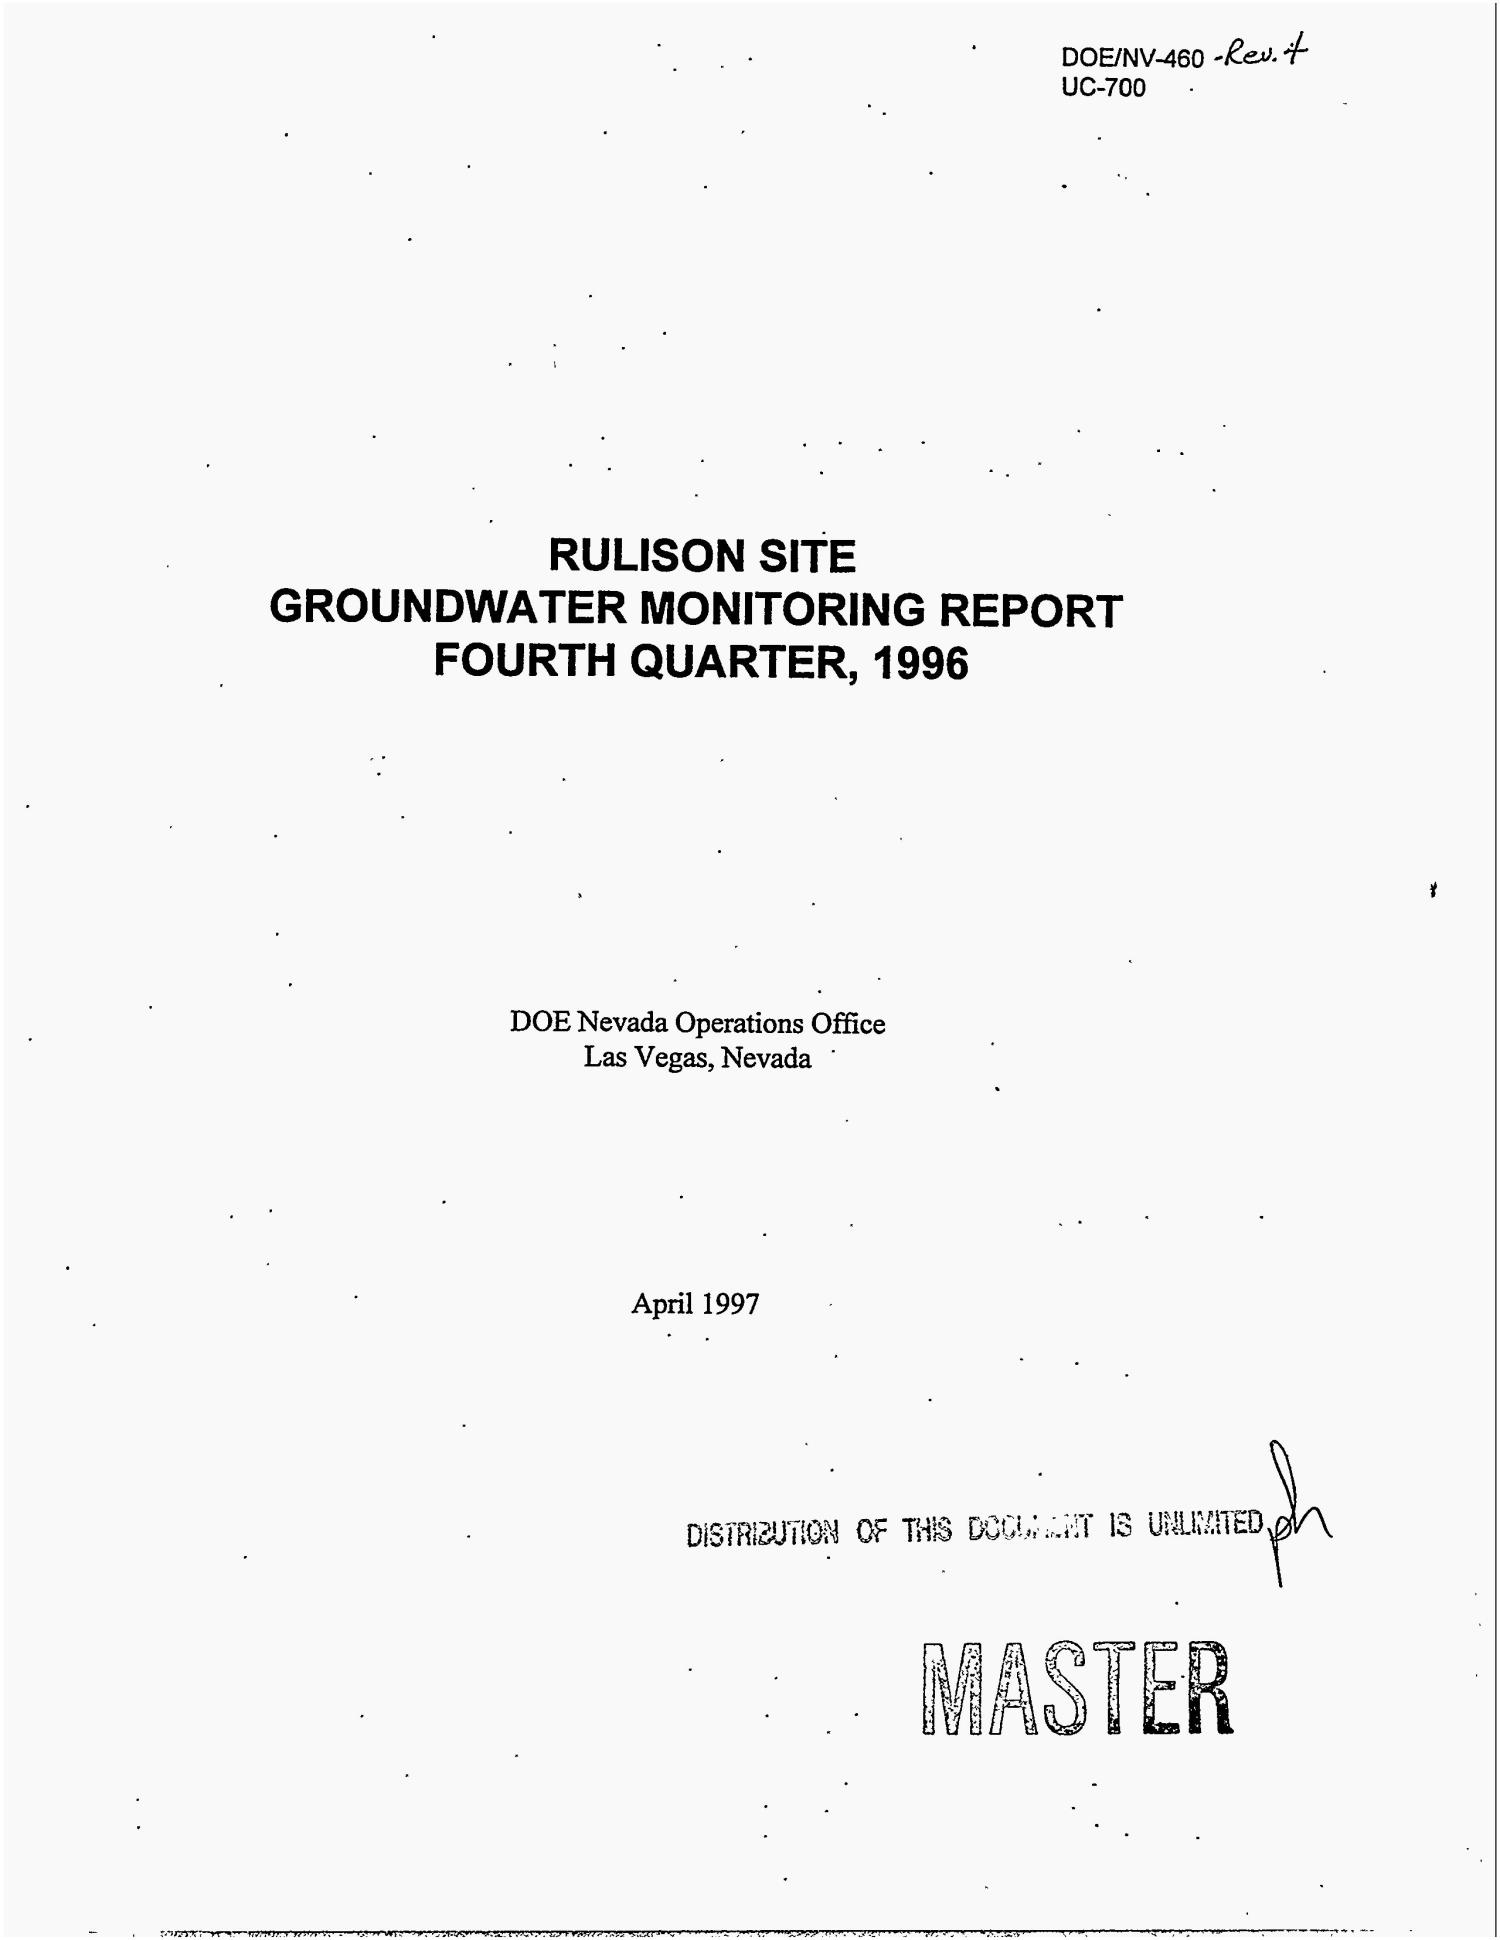 Rulison Site groundwater monitoring report fourth quarter, 1996. Revision 4                                                                                                      [Sequence #]: 1 of 42